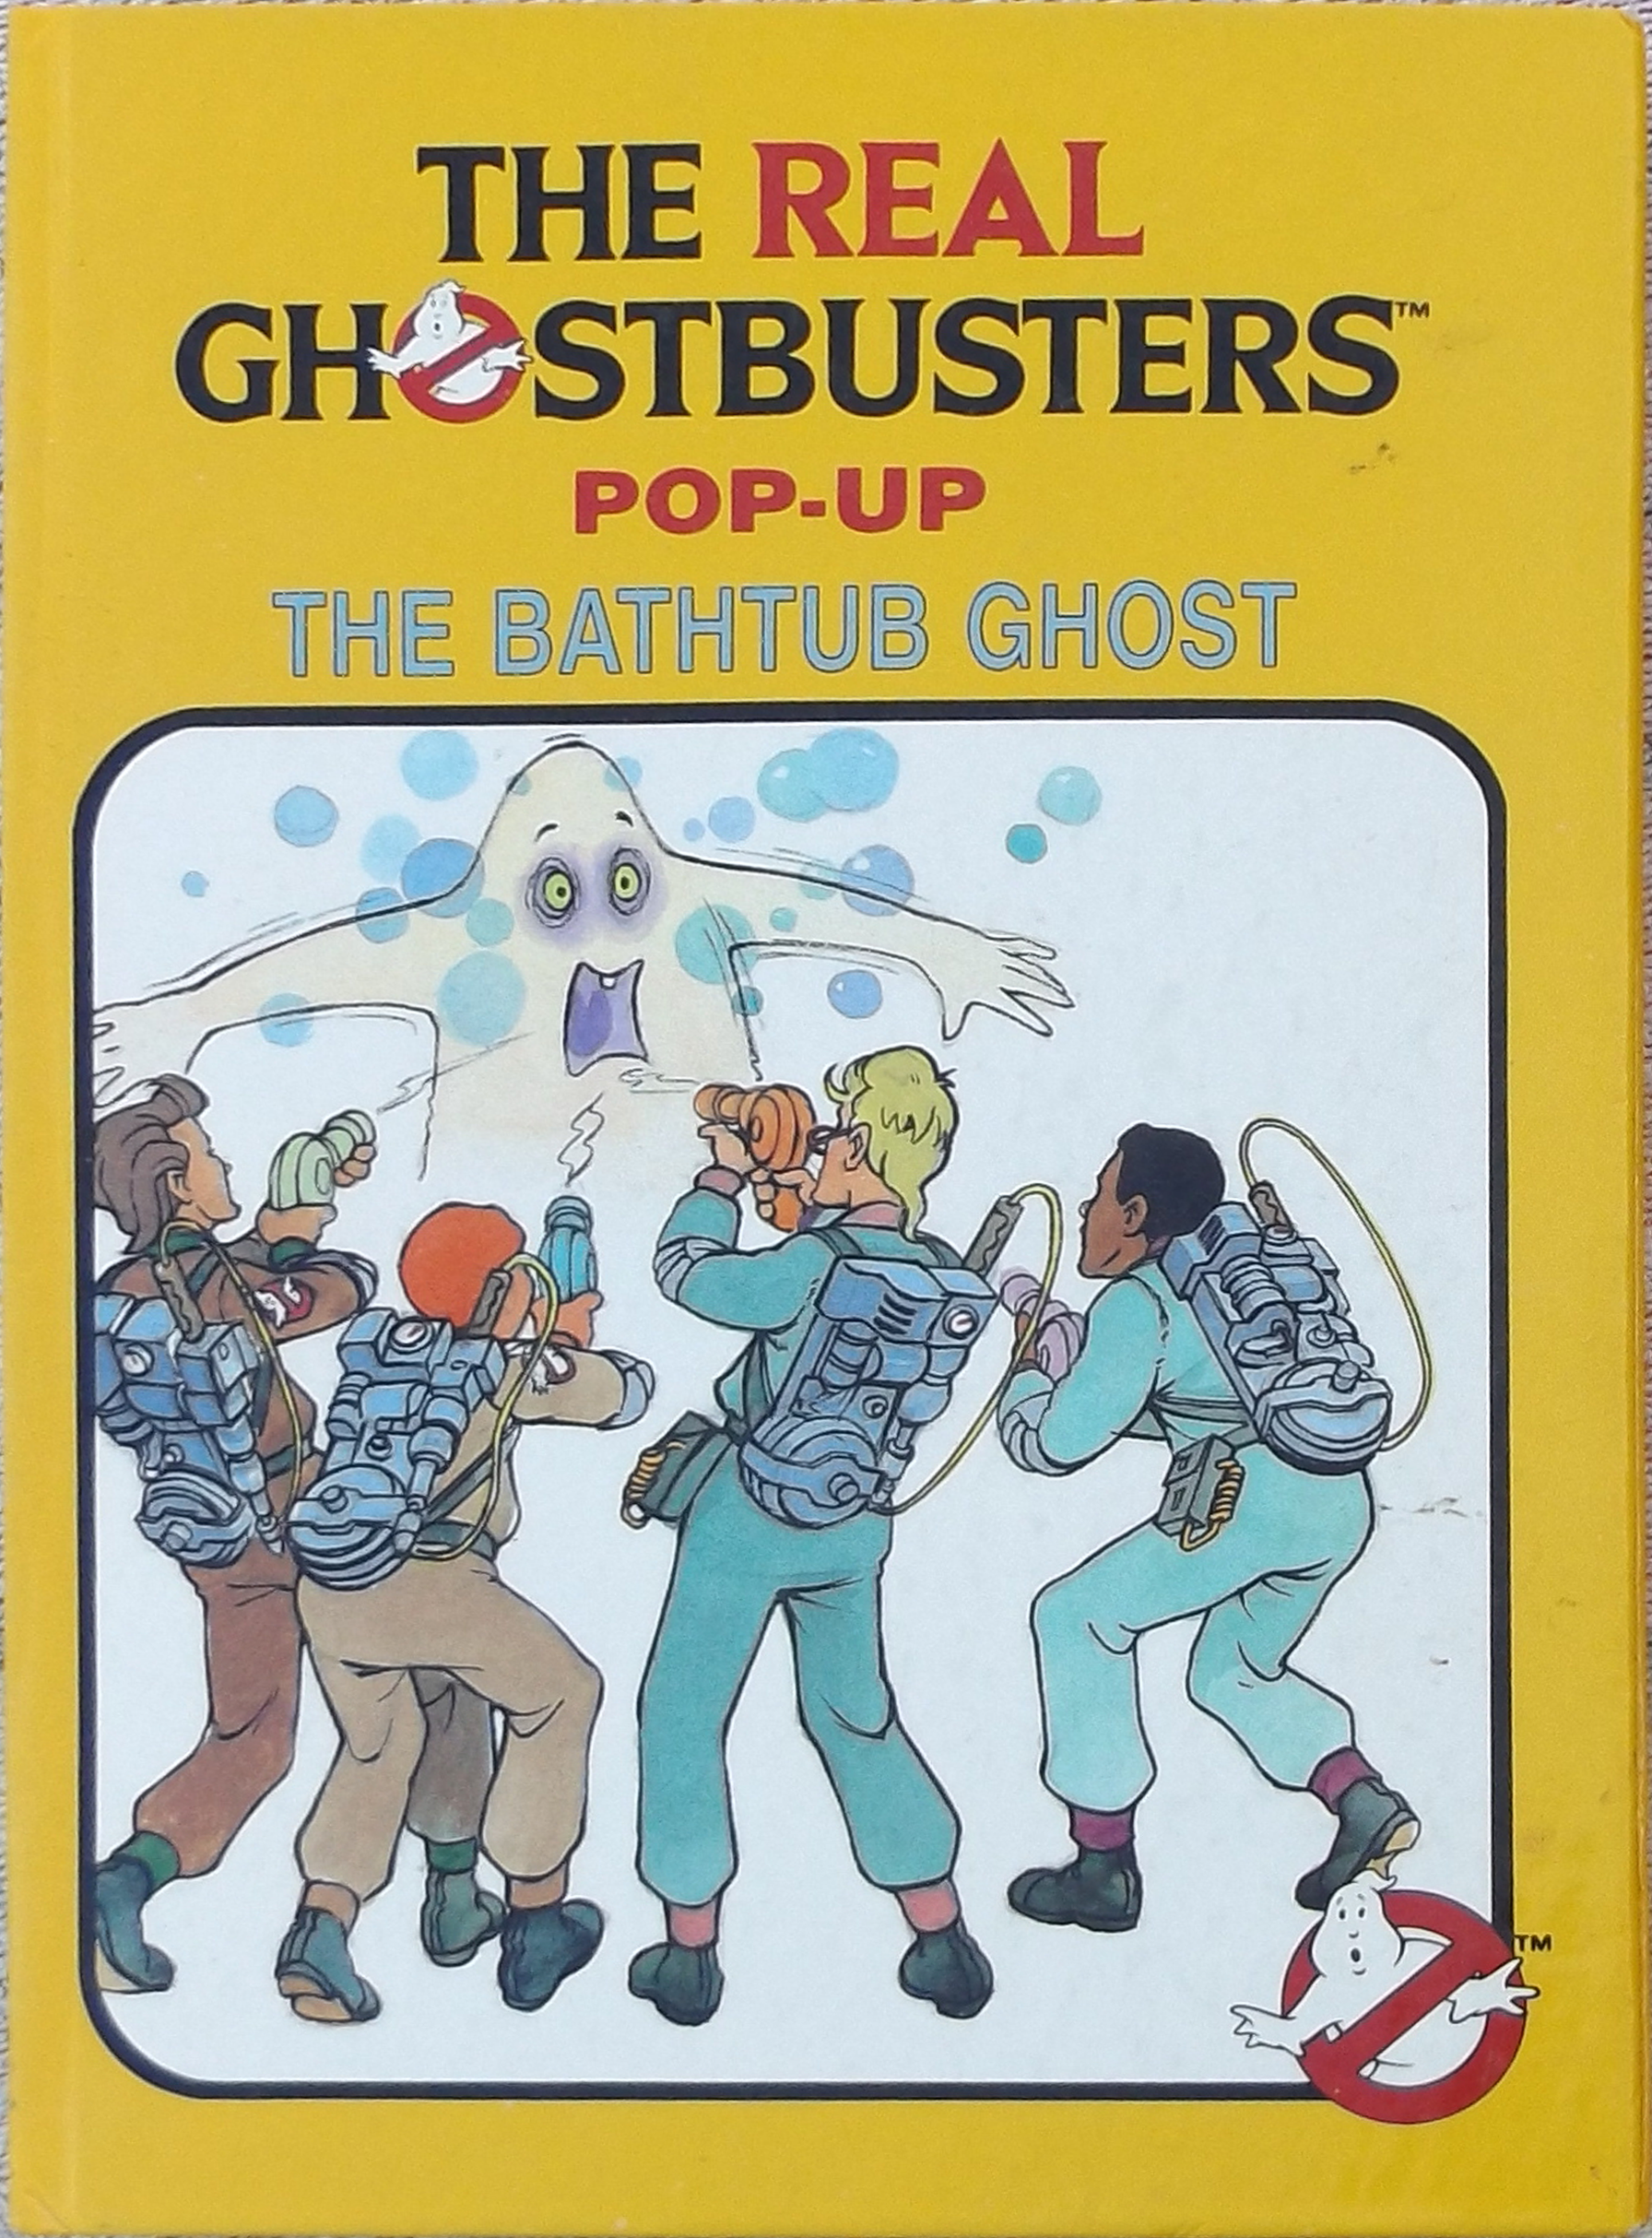 The Real Ghostbusters Pop-Up: The Bathtub Ghost